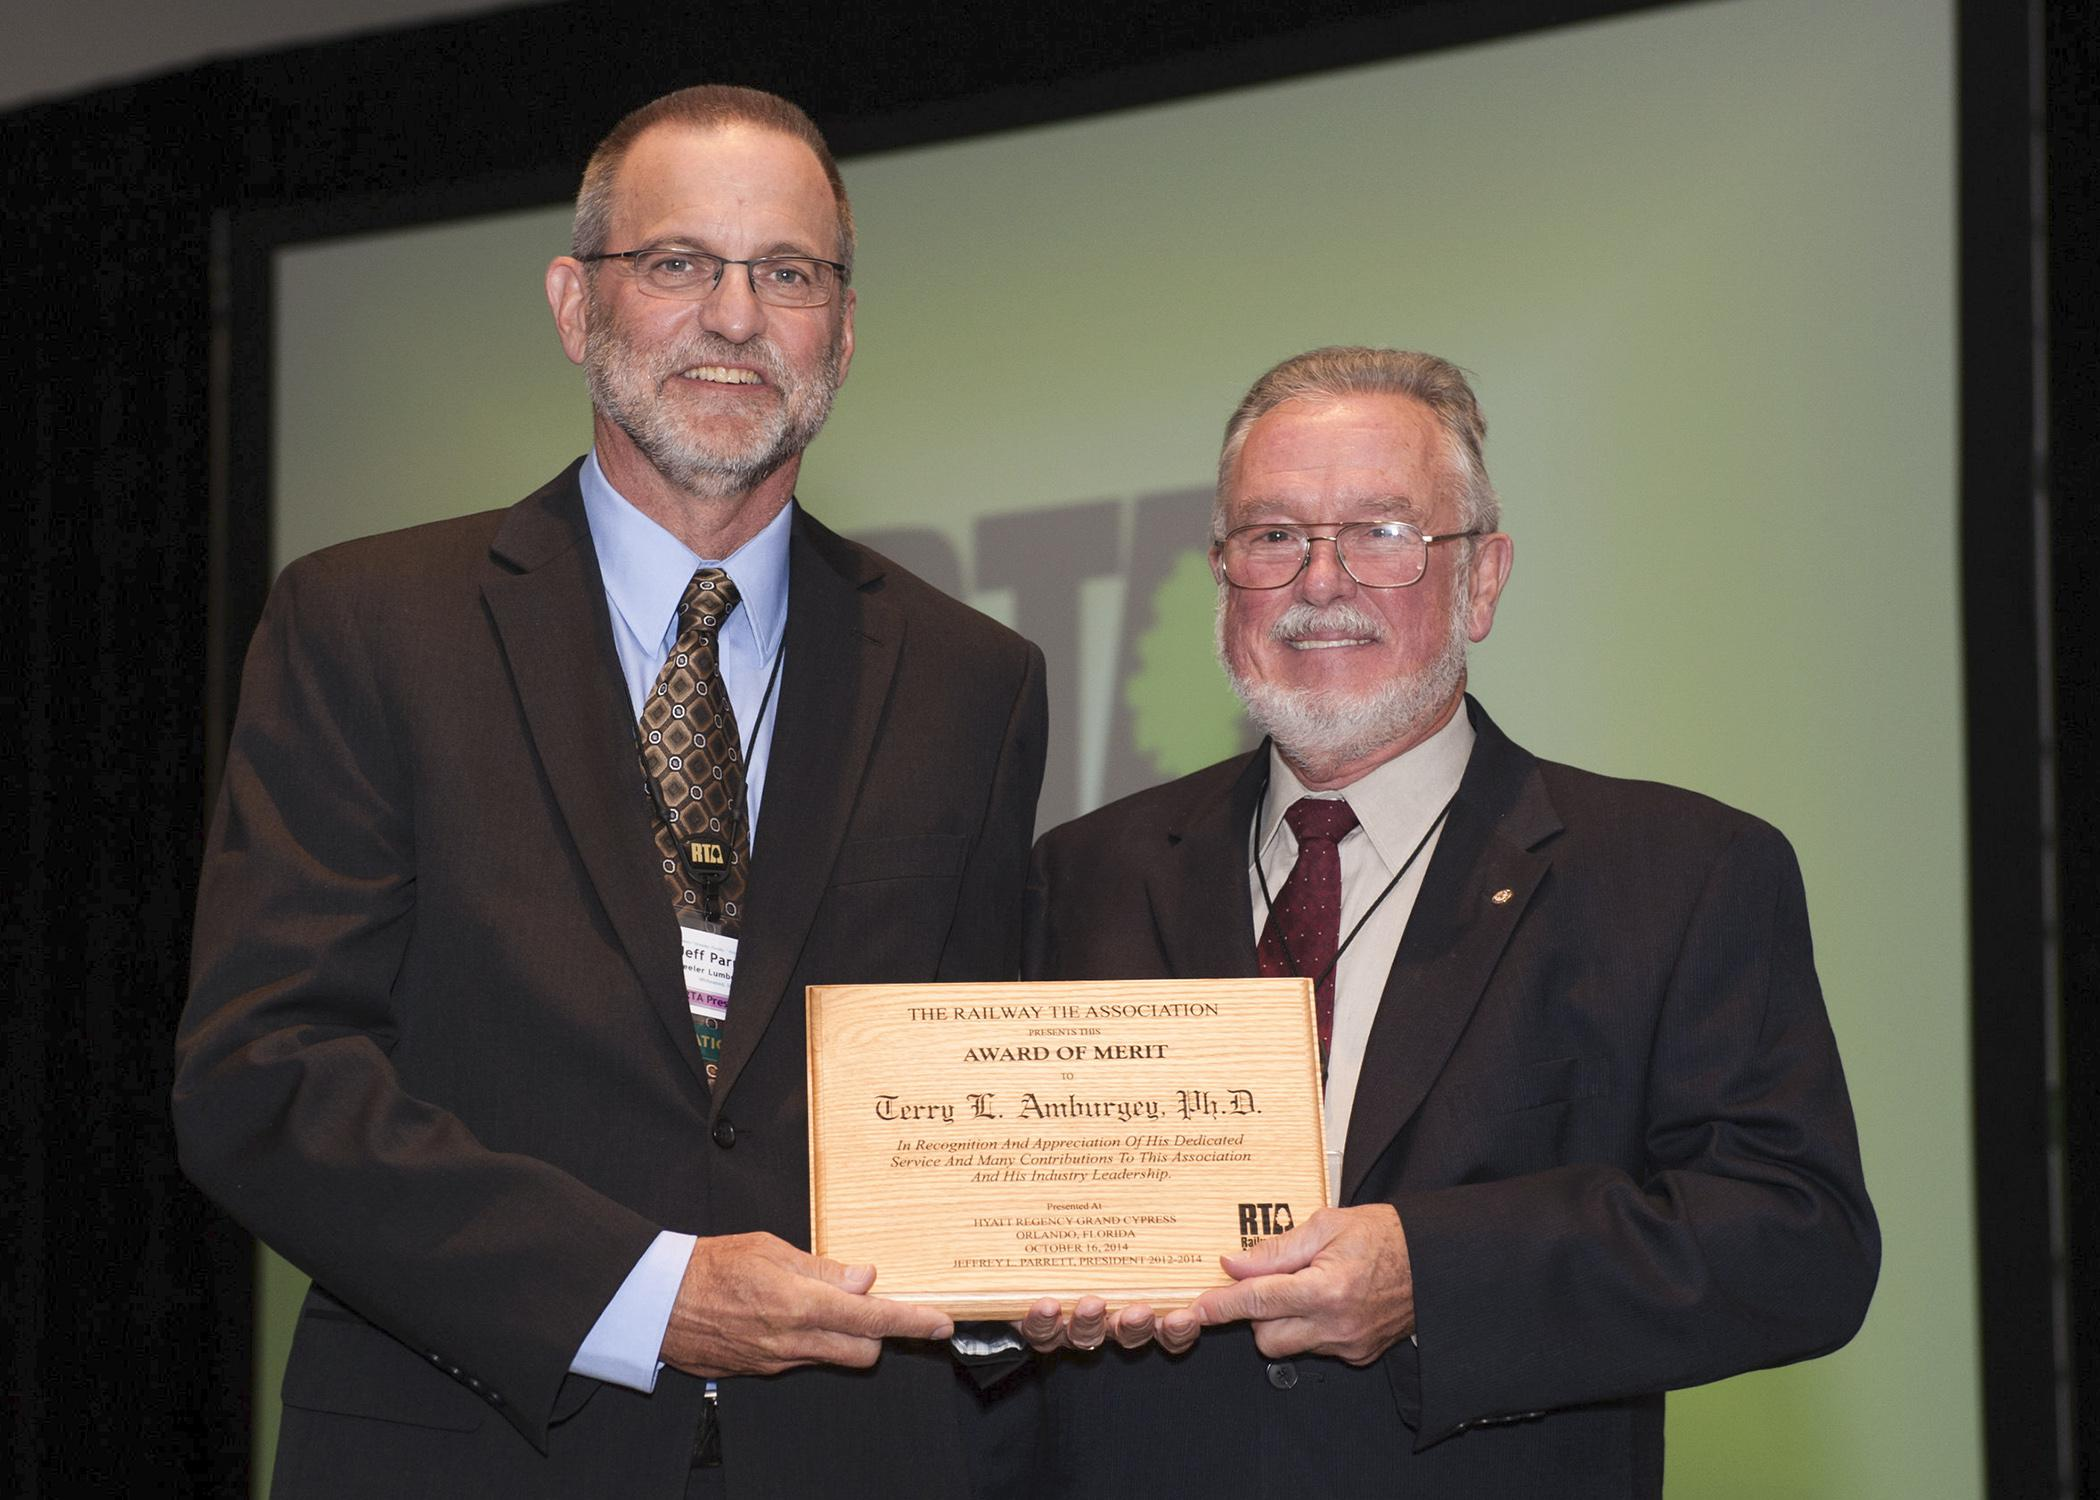 Jeff Parrett, currently of Wheeler Lumber and past president of the Railway Tie Association, left, presents Terry Amburgey, Mississippi State University professor emeritus and Giles Distinguished Professor, with the association's lifetime merit award. (Photo by Gary Coleman/Coleman Photography)